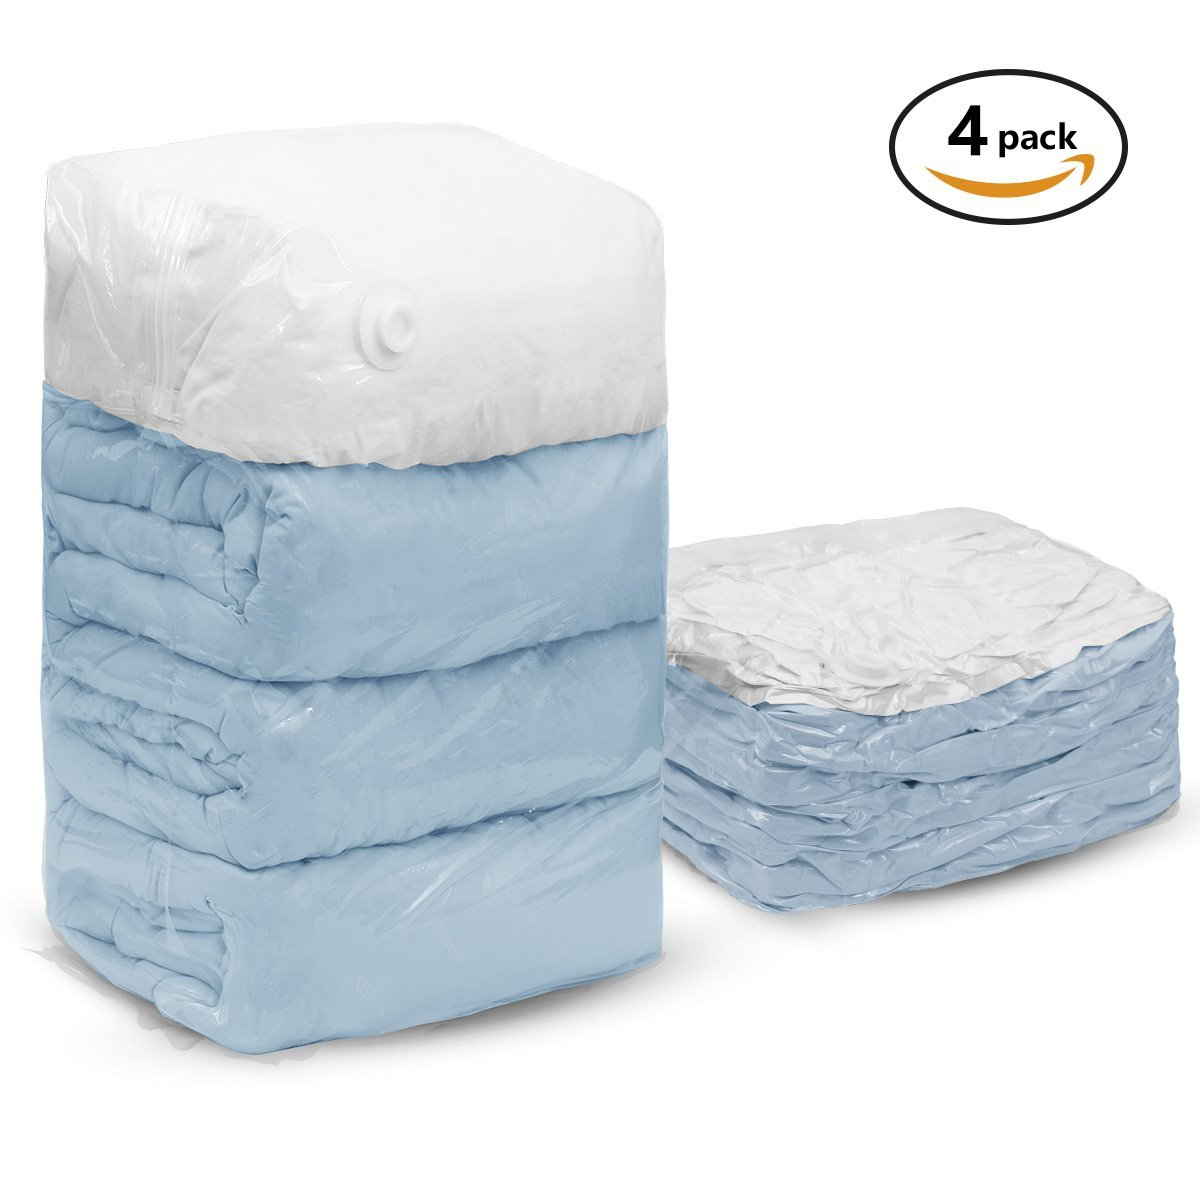 760681bbe2d Get Quotations · TAILI Cube Vacuum Storage Bags Jumbo 31x40x15(Works With  Any Vacuum Cleaner) Extra Large